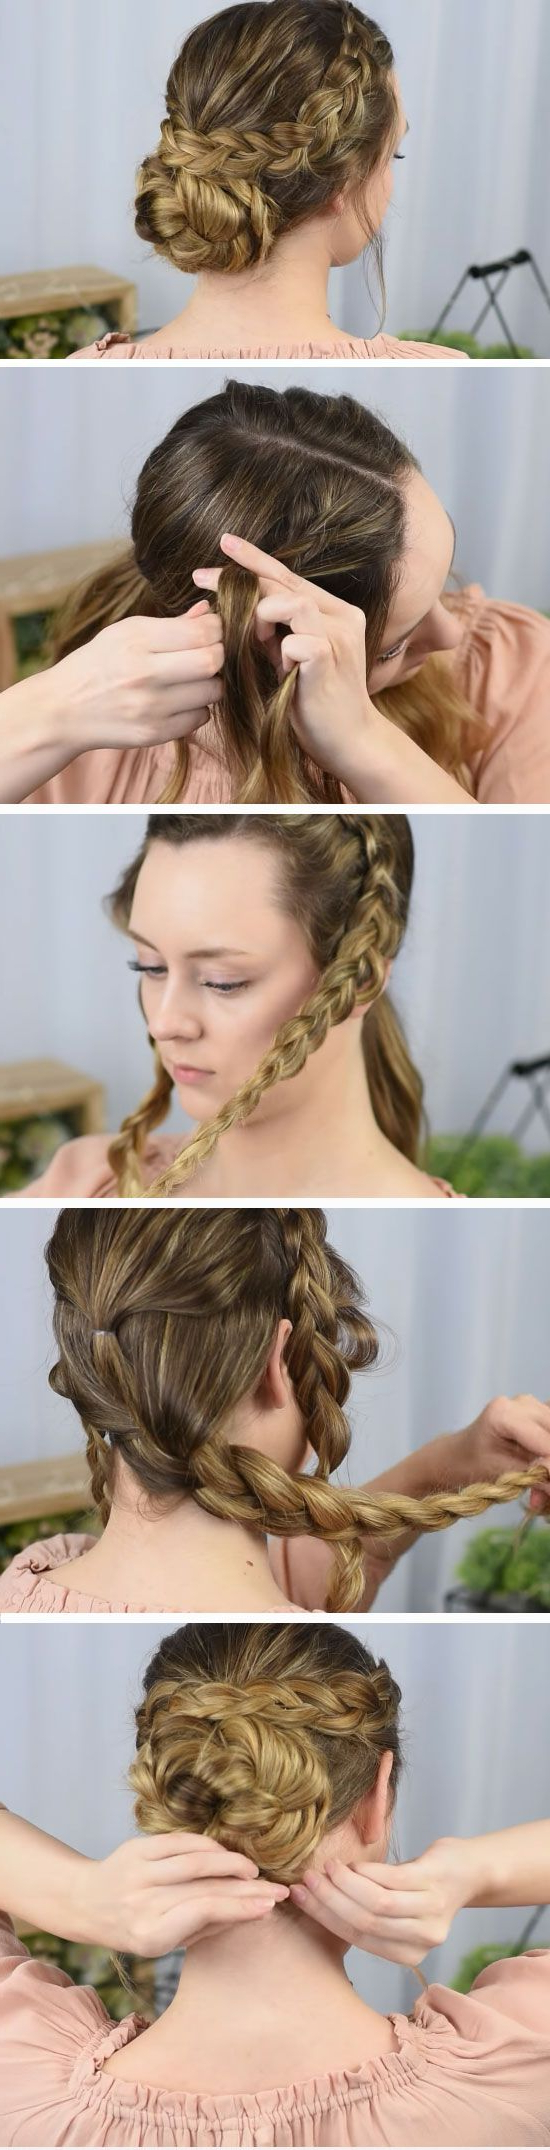 Fashionable Side Bun Twined Prom Hairstyles With A Braid Inside 15 Easy Diy Prom Hairstyles For Medium Hair (View 14 of 20)